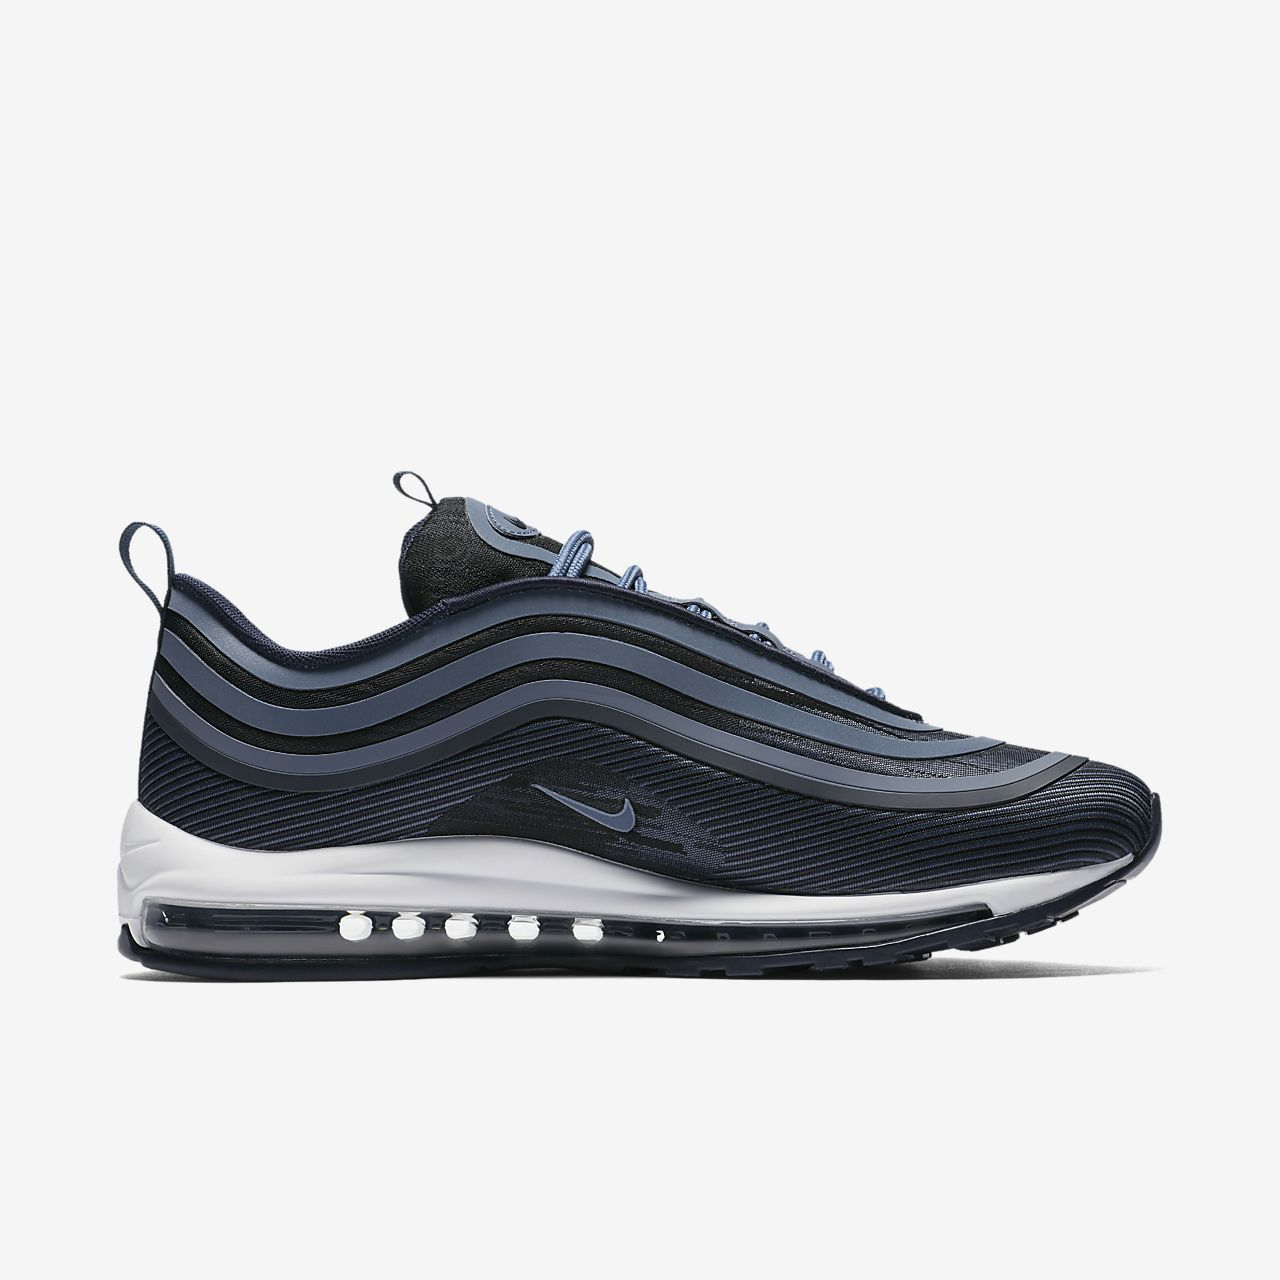 nike air max 97 ultra '17 women's shoe silver